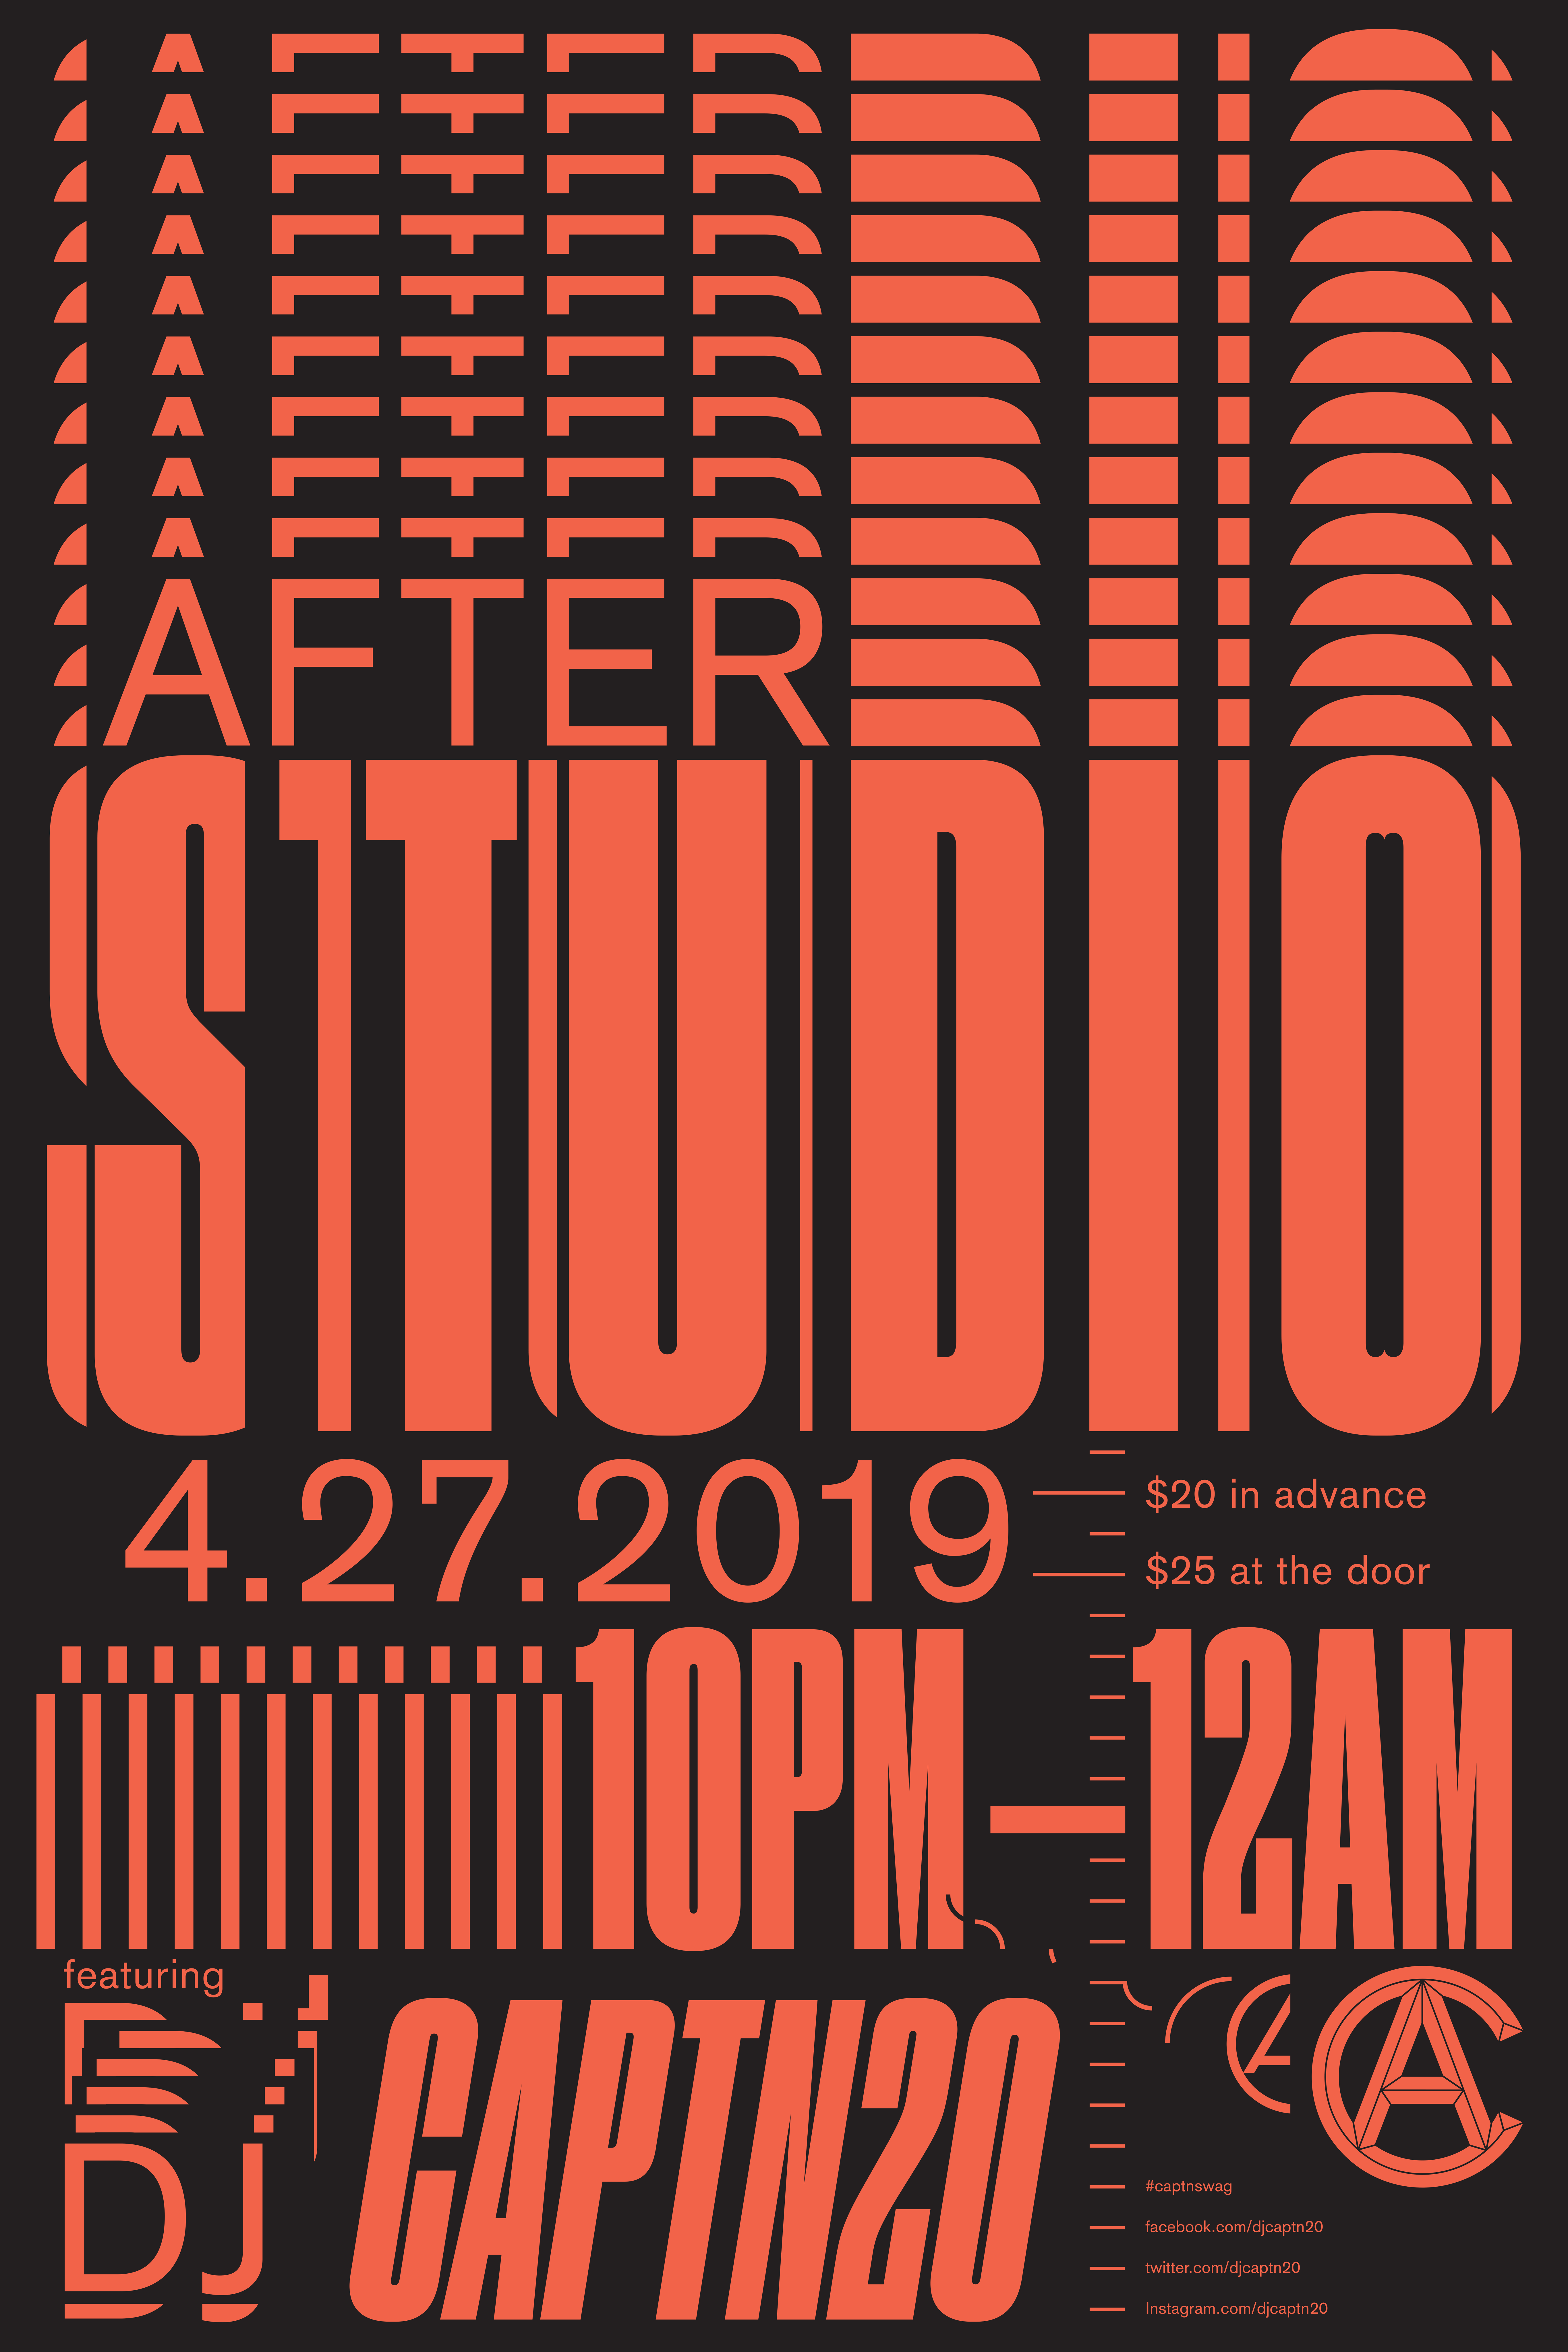 After Studio 2019 poster, red and black